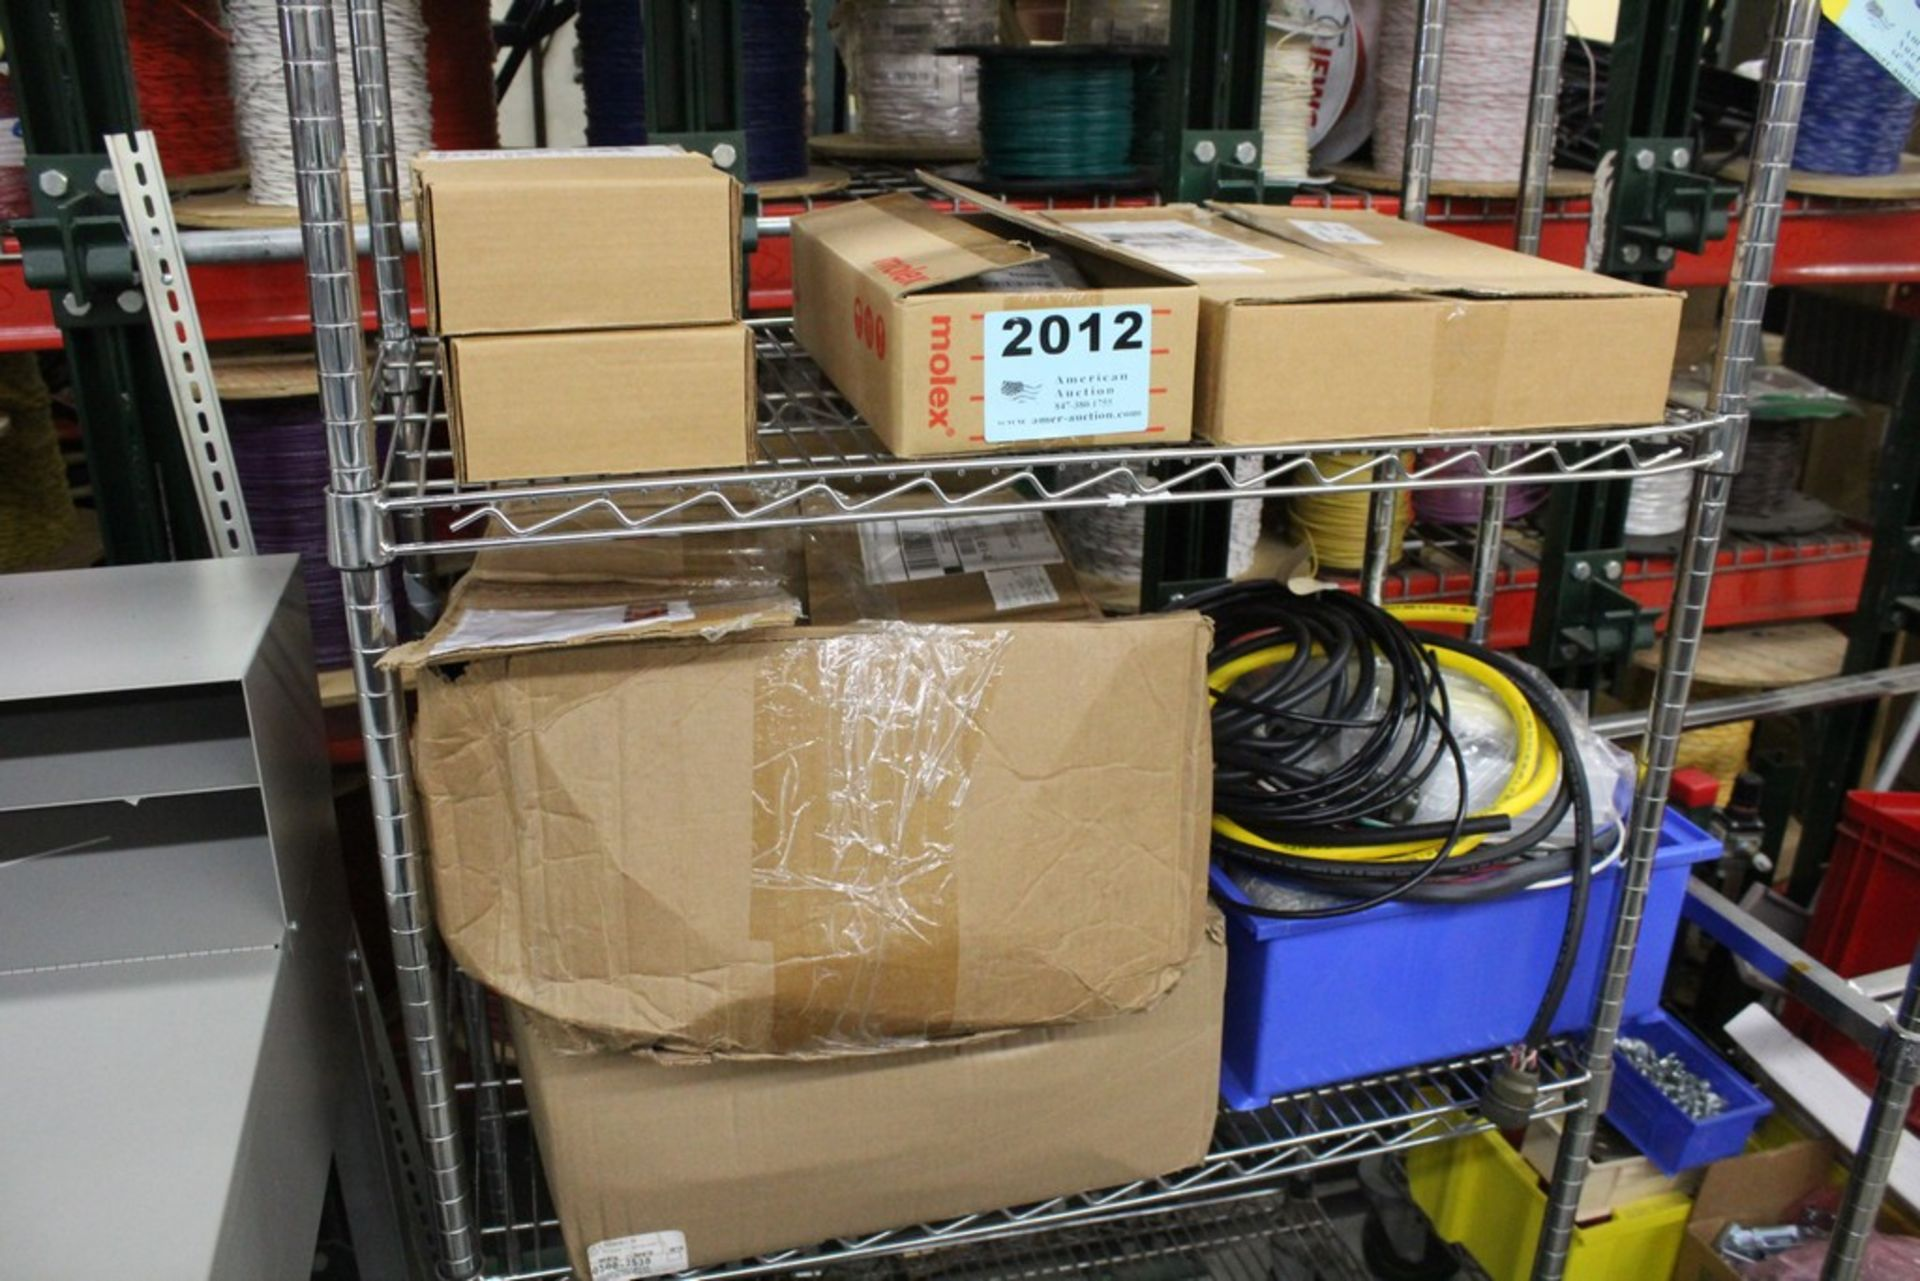 Lot 2012 - ASSORTED WIRE AND COMPONENTS ON SHELVES, NO SHELVING